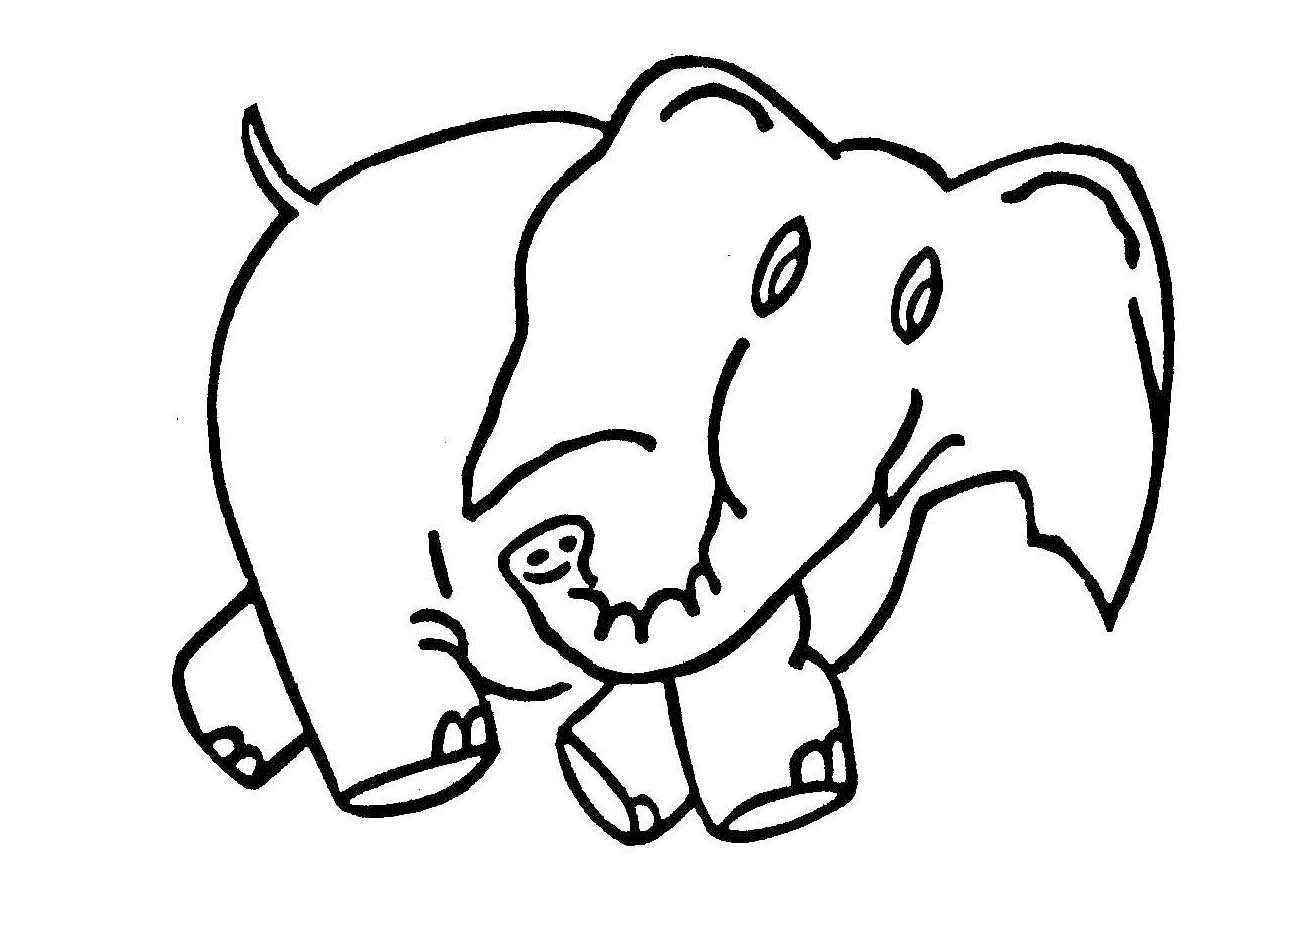 Elephant Drawings For Kids.